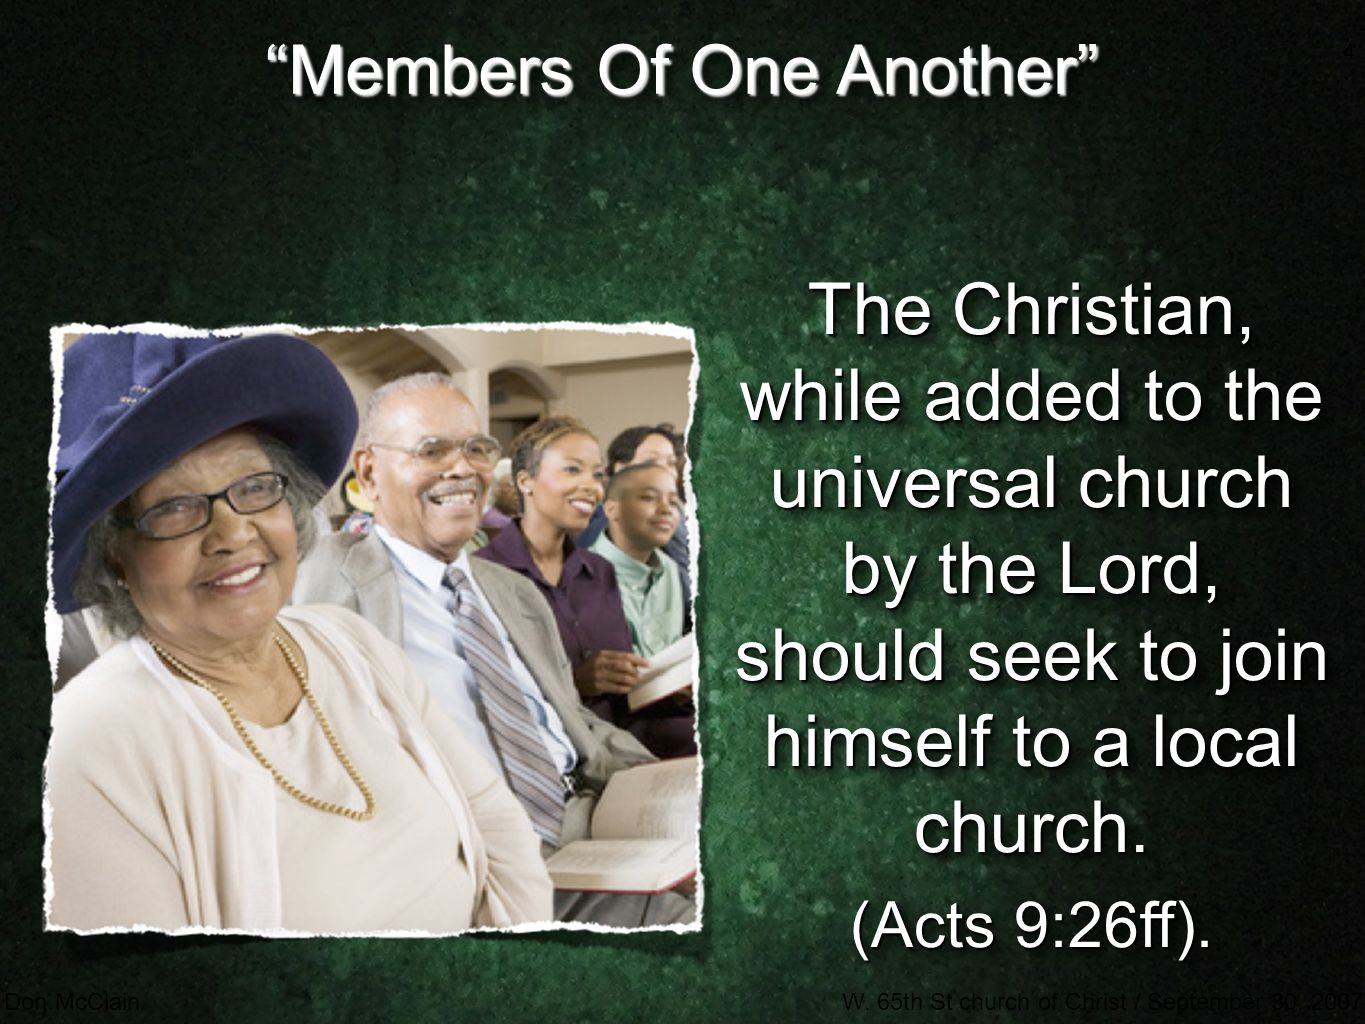 """4 Don McClainW. 65th St church of Christ / September 30, 2007 4 """"Members Of One Another"""" The Christian, while added to the universal church by the Lor"""